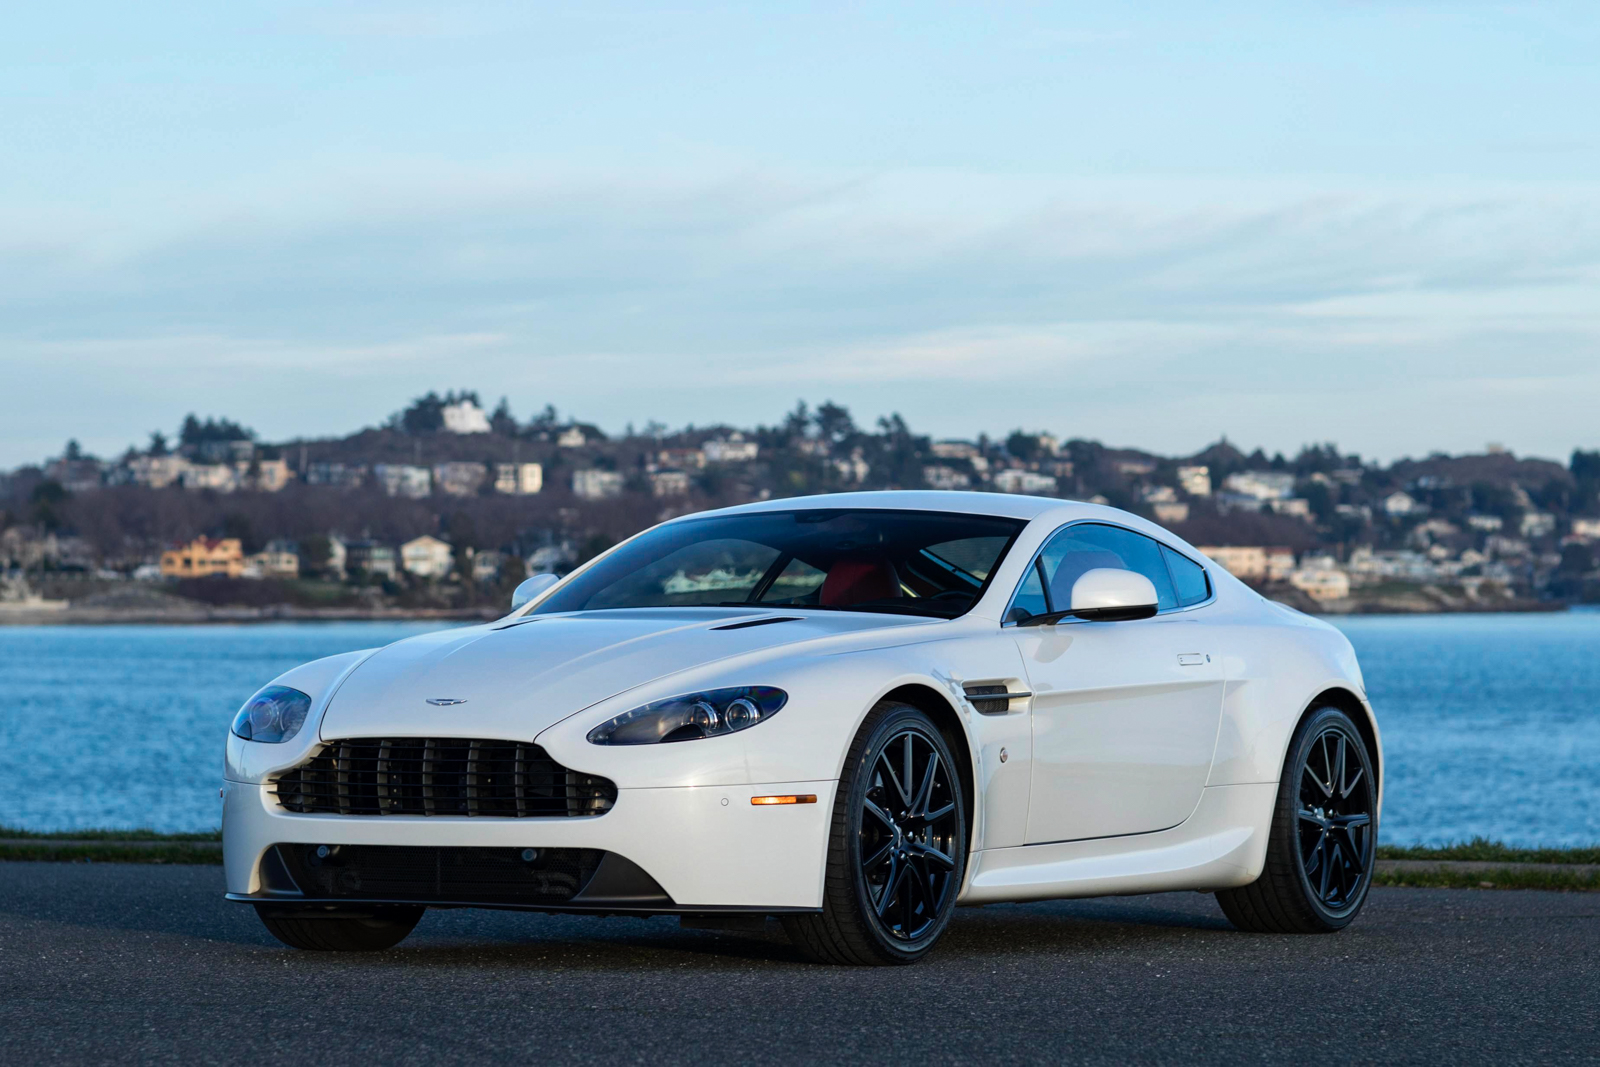 2013 Aston Martin V8 Vantage Sportshift for sale